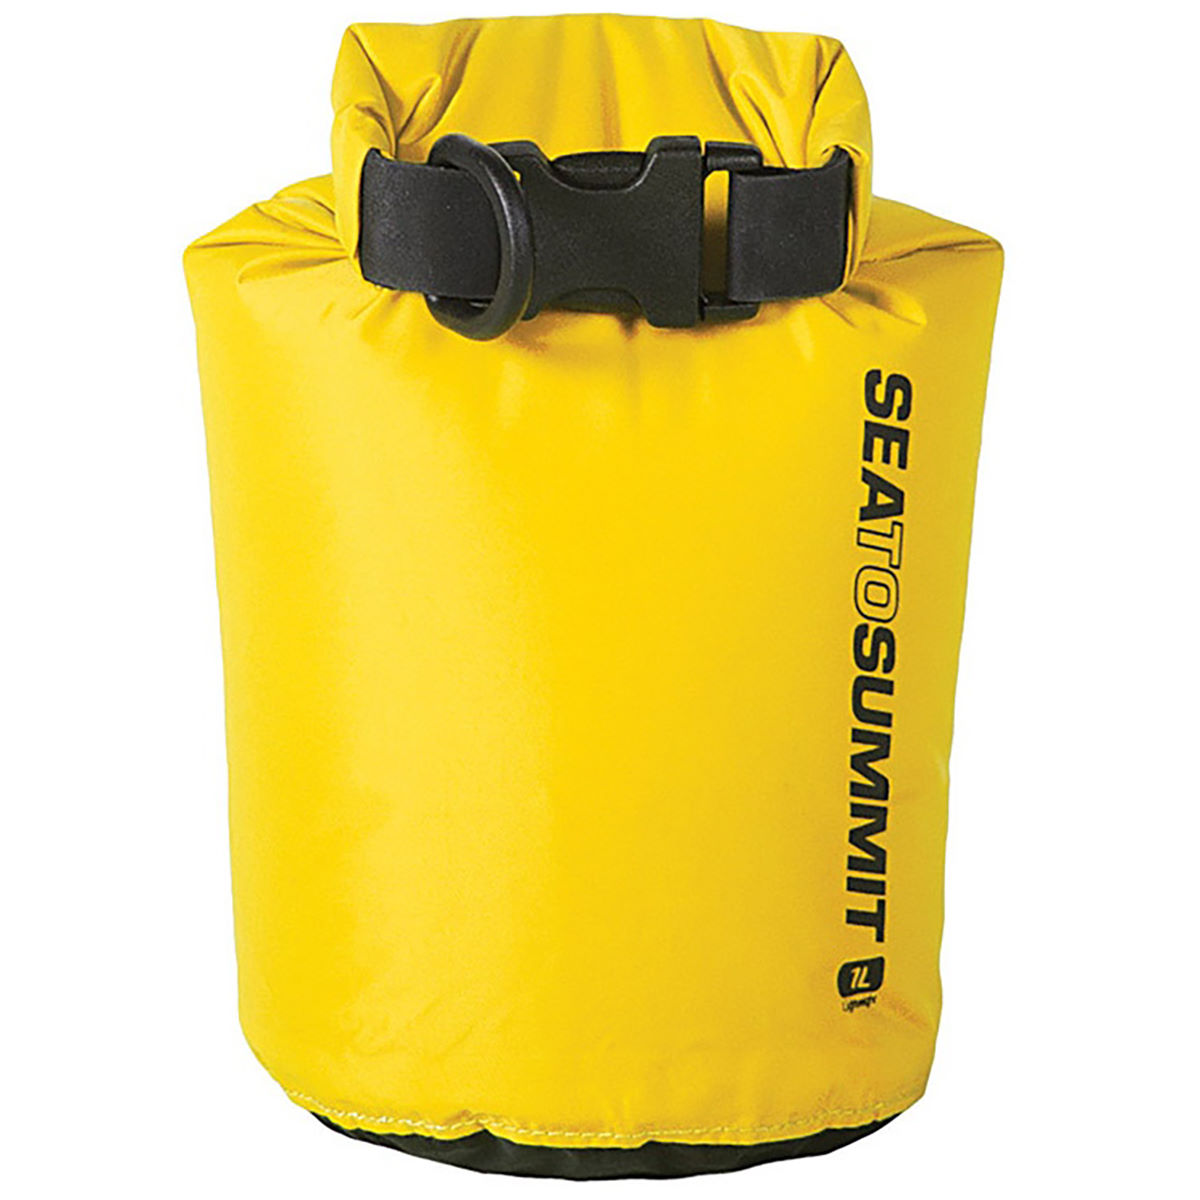 Sea To Summit Lightweight 70D Dry Sack (1 Litre)   Dry Bags